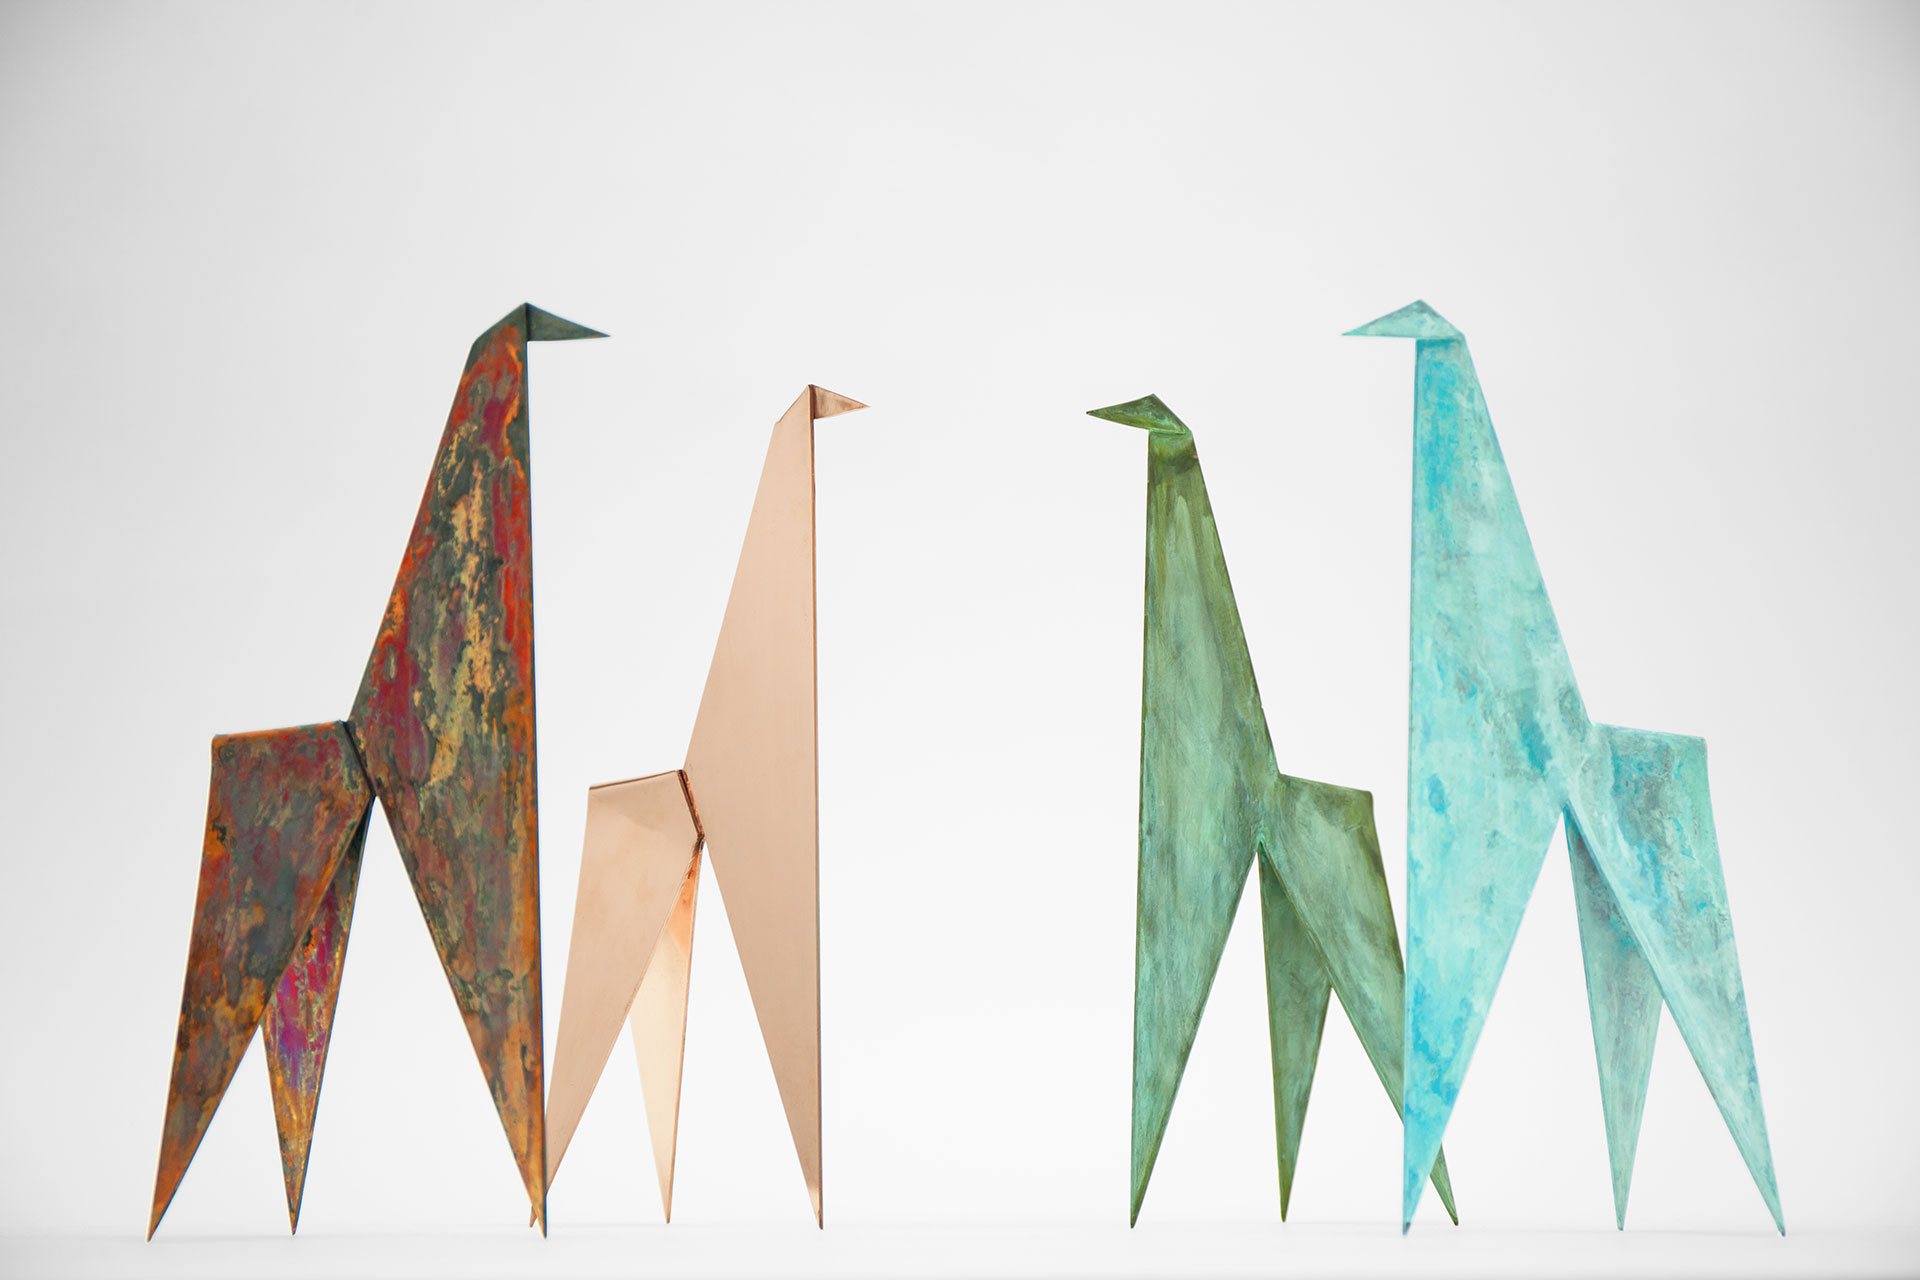 Colorful apartment decoration inspired by Japanese origami art